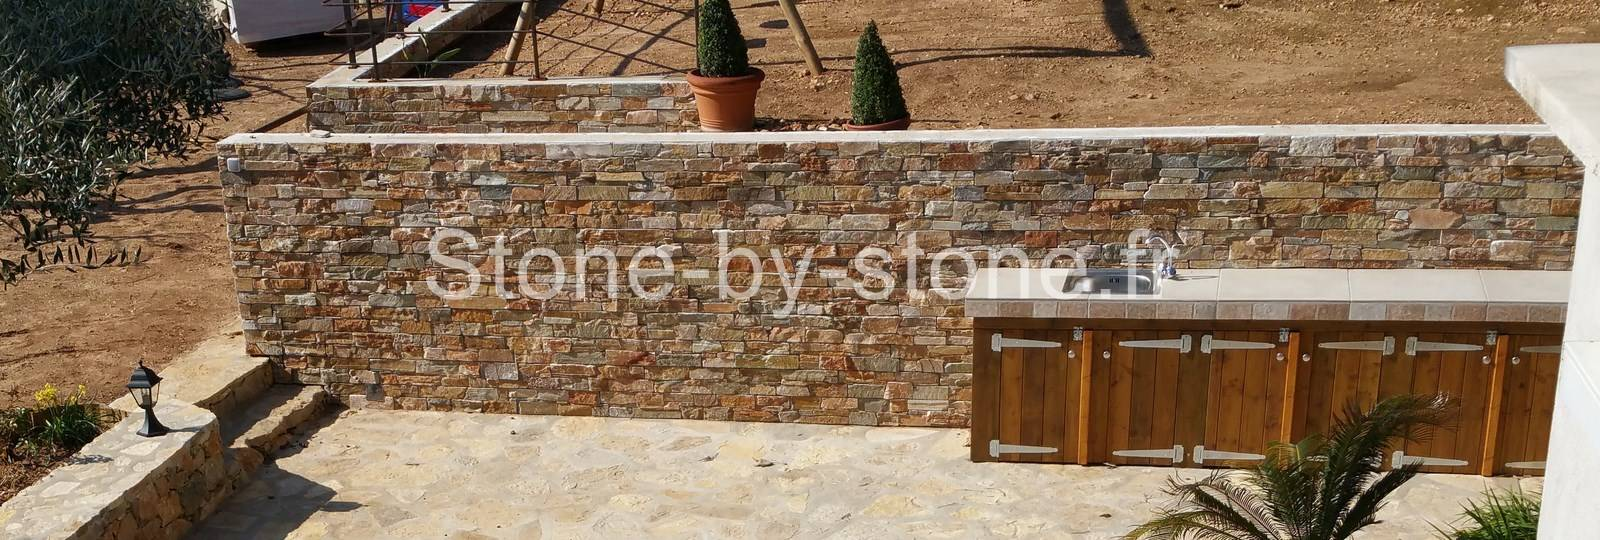 vente de pierre naturelle pour int rieur et ext rieur toulon stone by stone. Black Bedroom Furniture Sets. Home Design Ideas